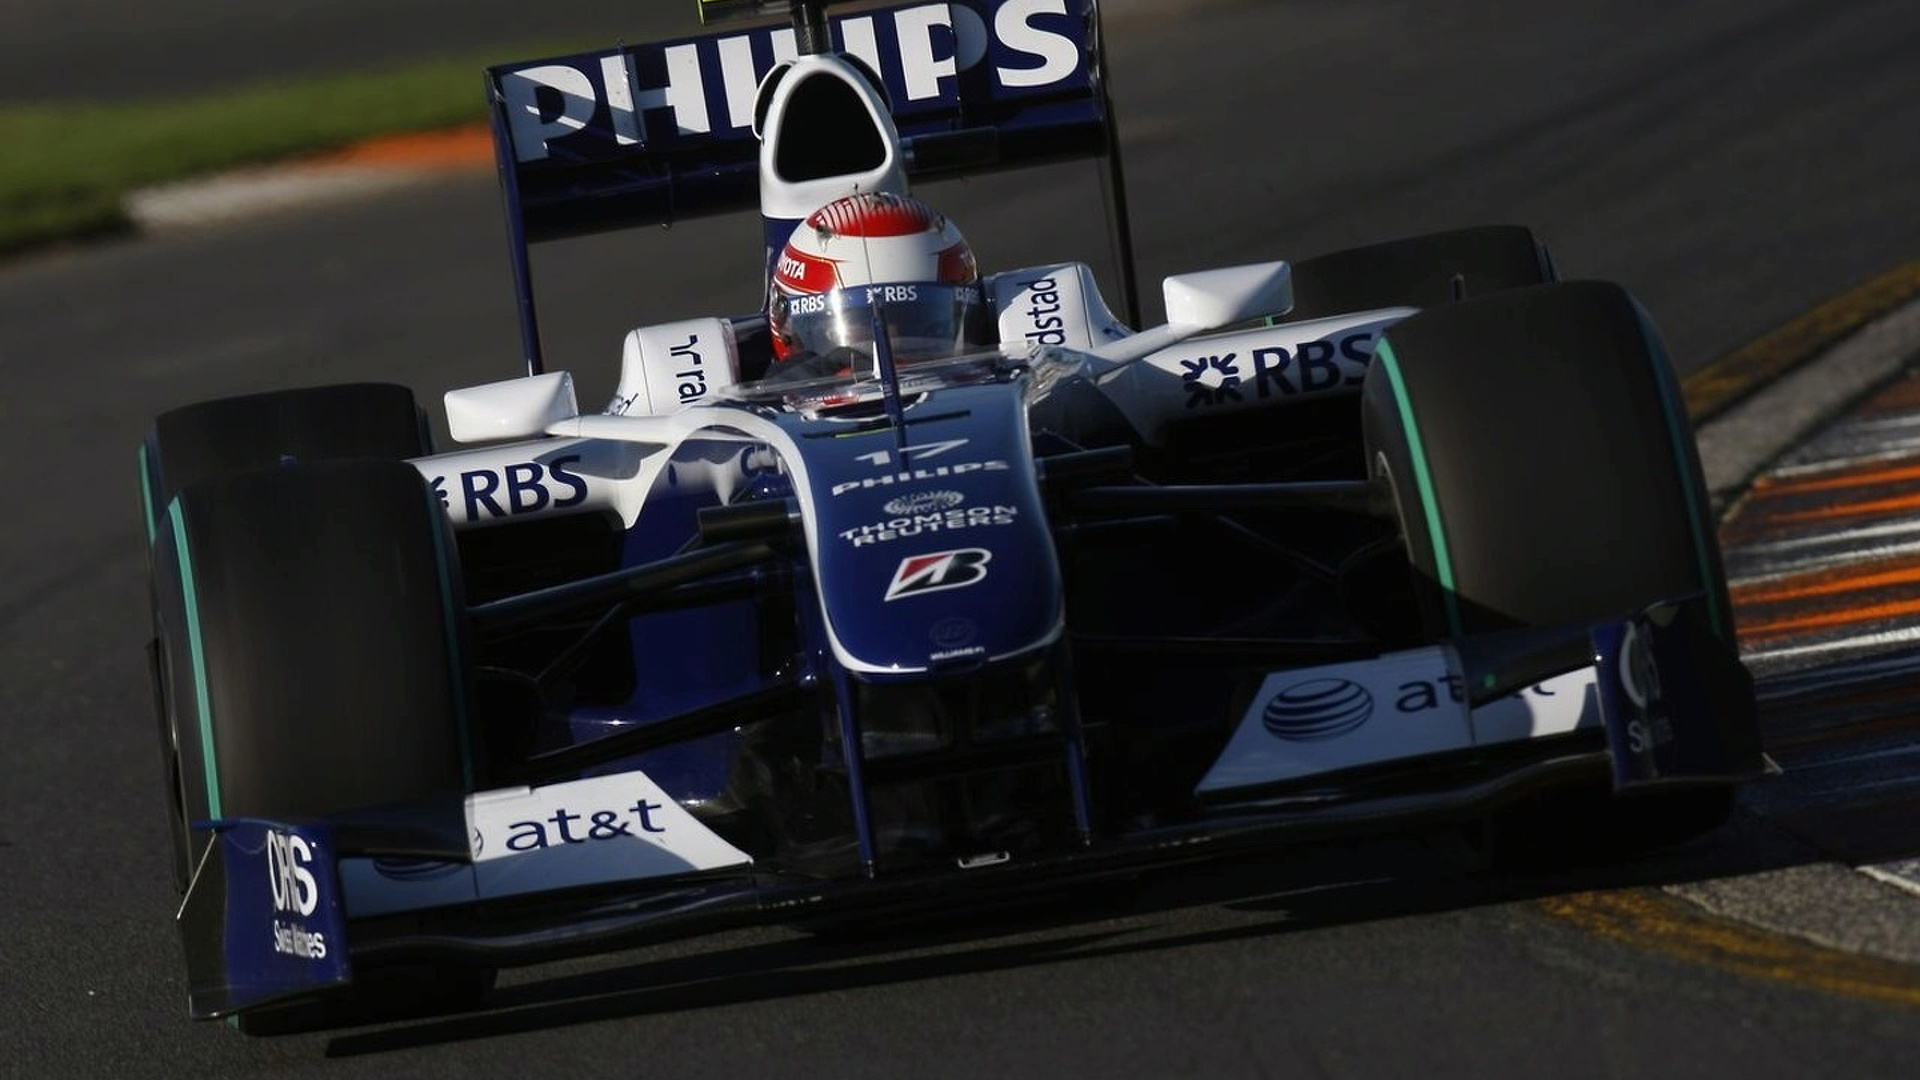 Nico Rosberg tops the timesheets in both opening practice sessions